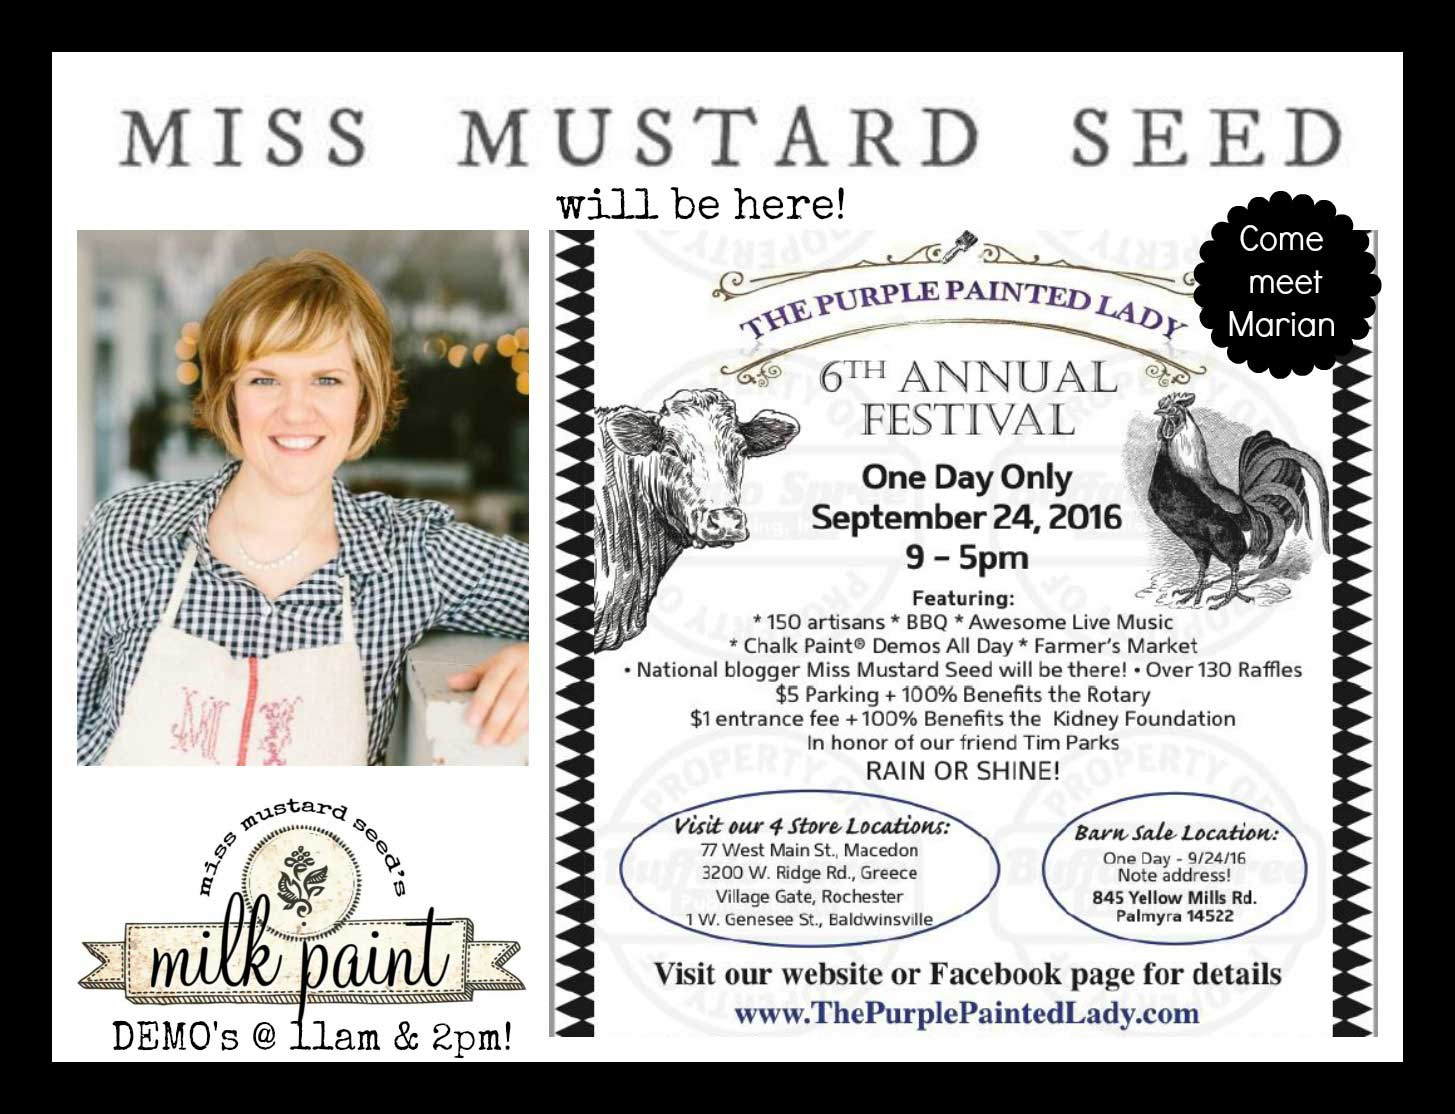 Miss Mustard Seed Milk Paint The Purple Painted Lady Barn Sale 2016 PR